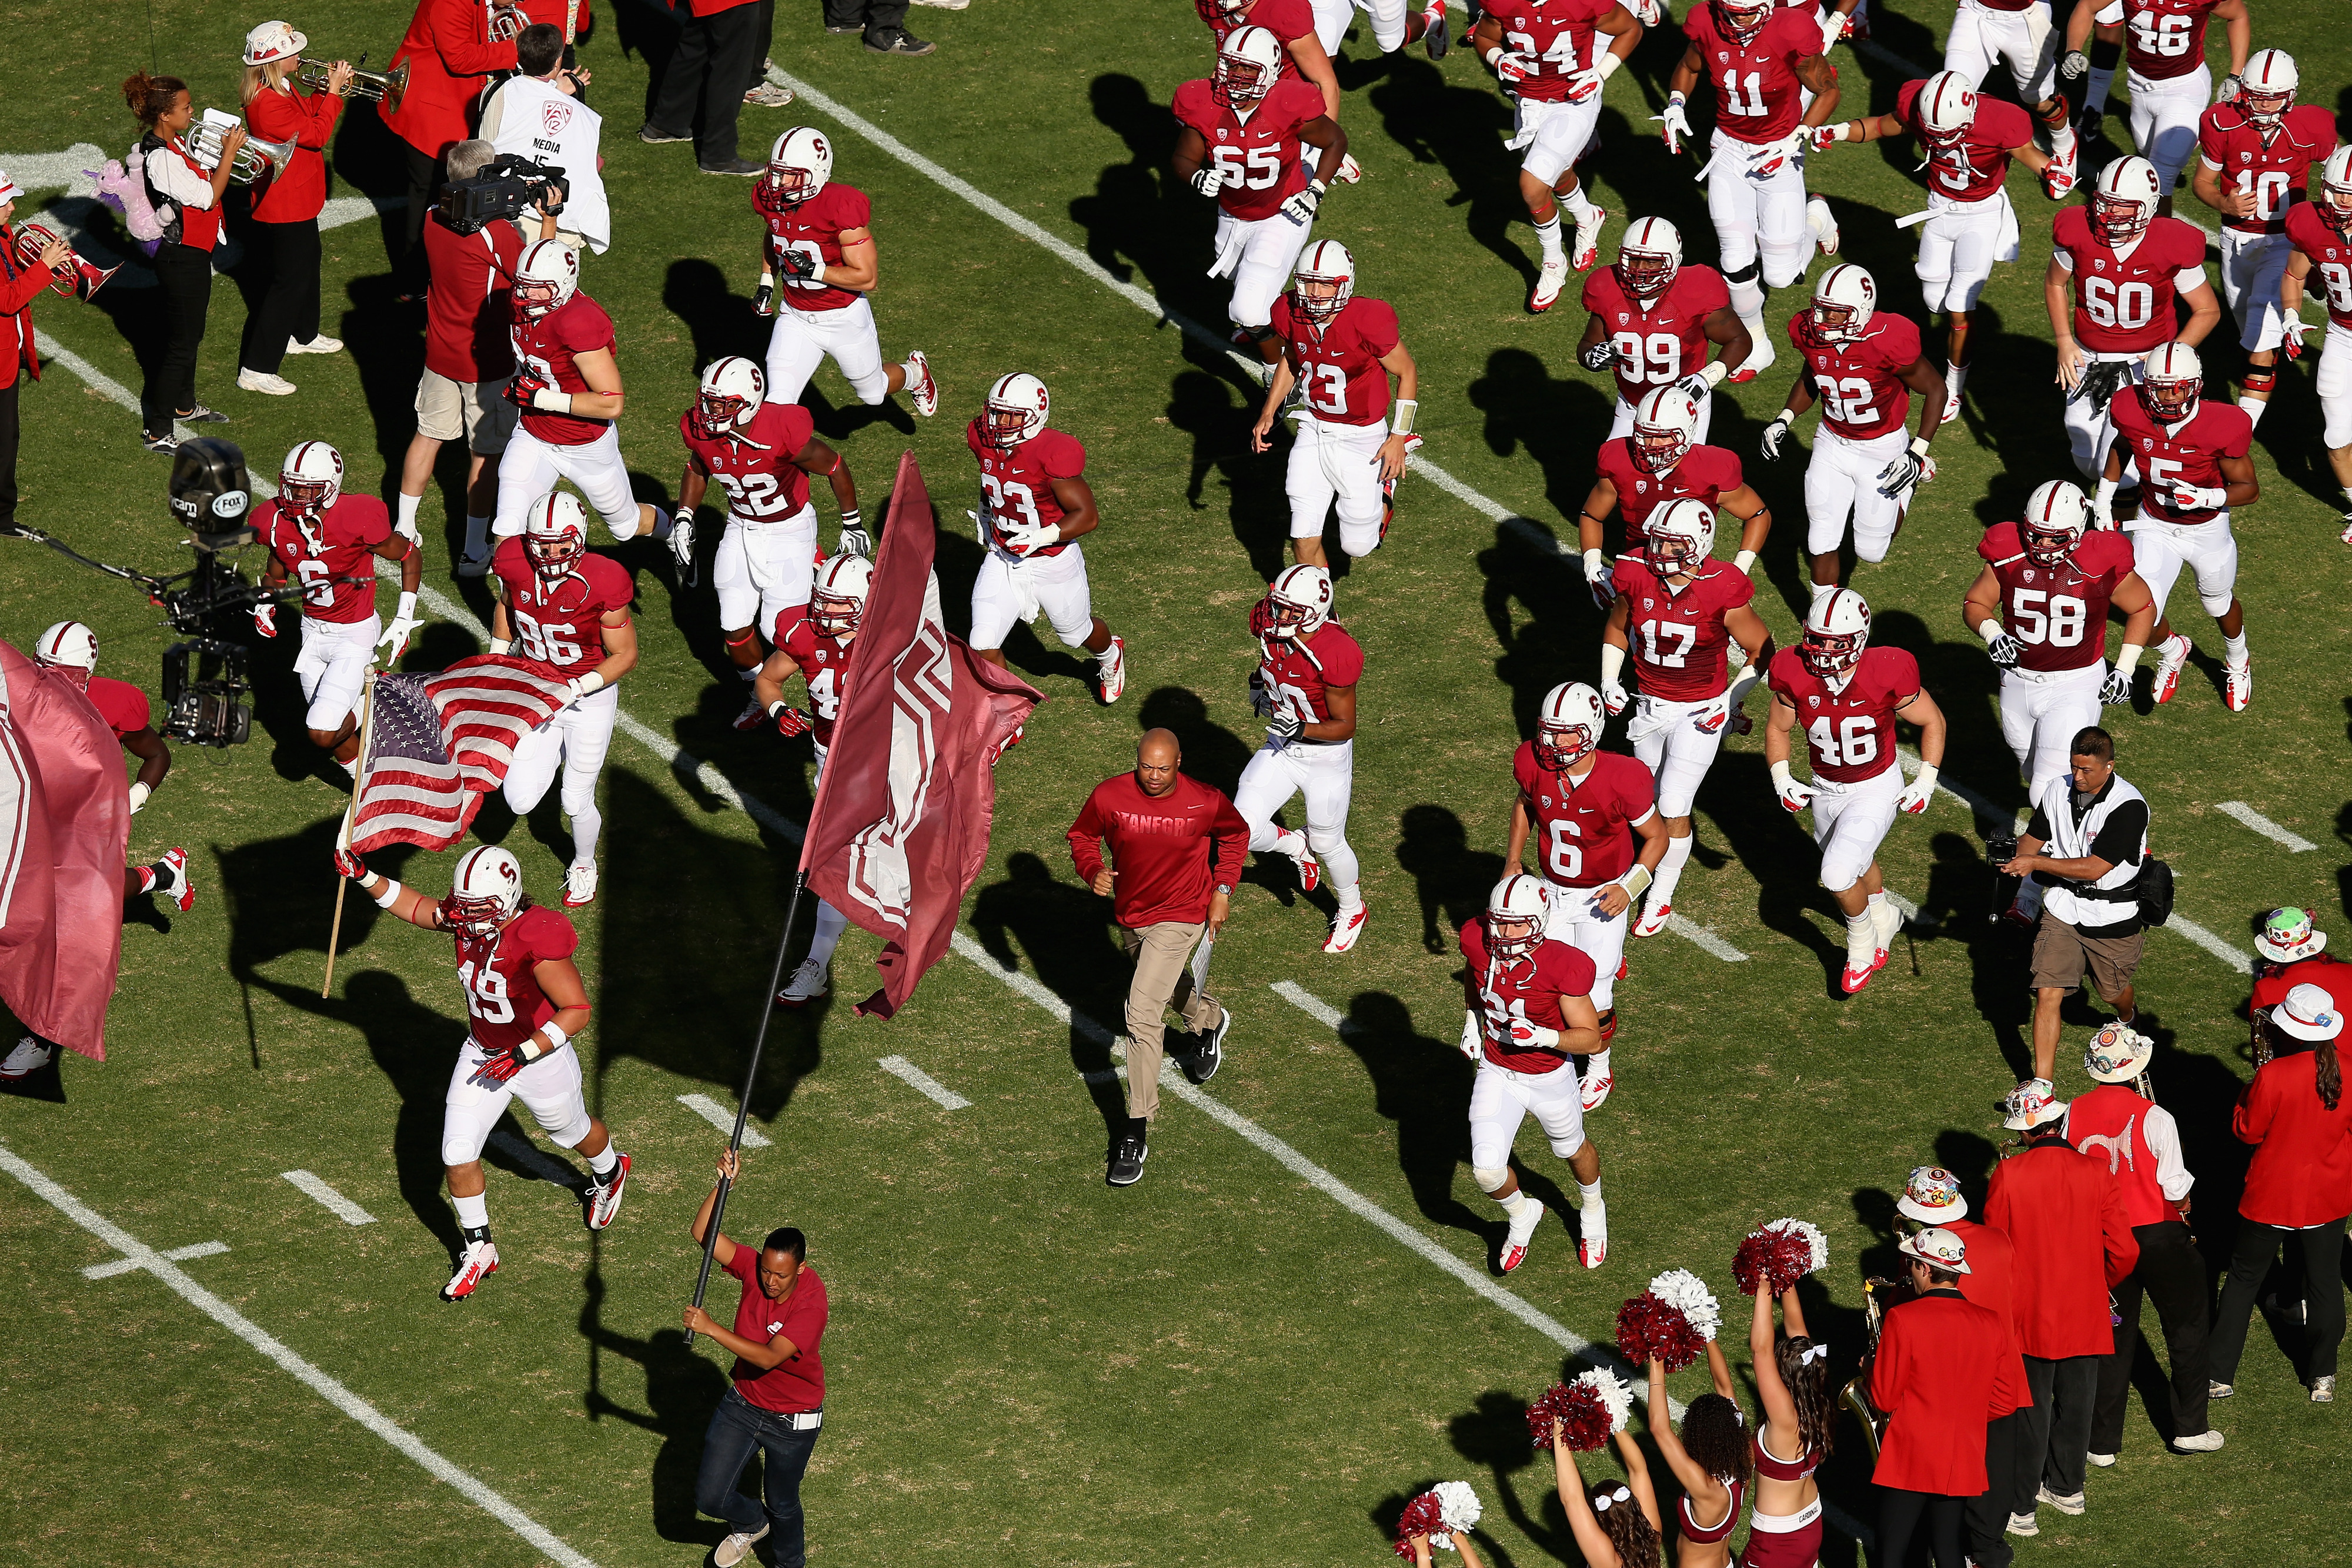 PALO ALTO, CA - SEPTEMBER 15:  Stanford Cardinal head coach David Shaw runs on to the field with his team before their game against the USC Trojans at Stanford Stadium on September 15, 2012 in Palo Alto, California.  (Photo by Ezra Shaw/Getty Images)